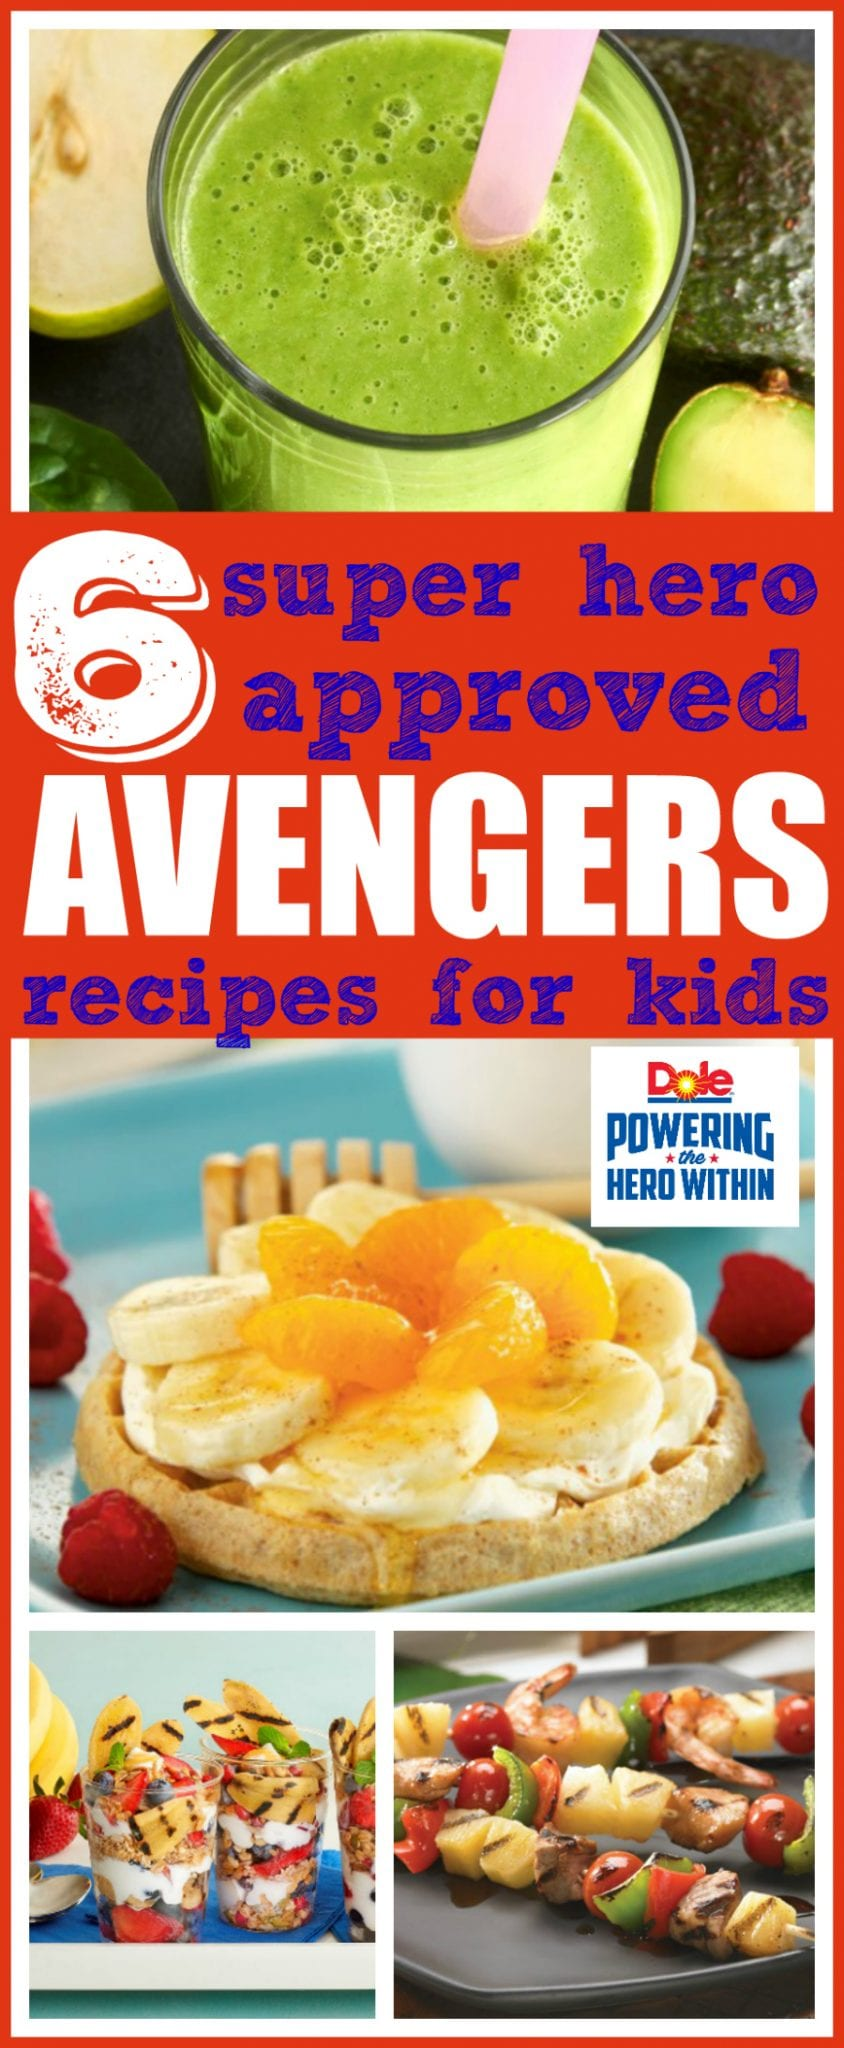 Avengers recipes for kids